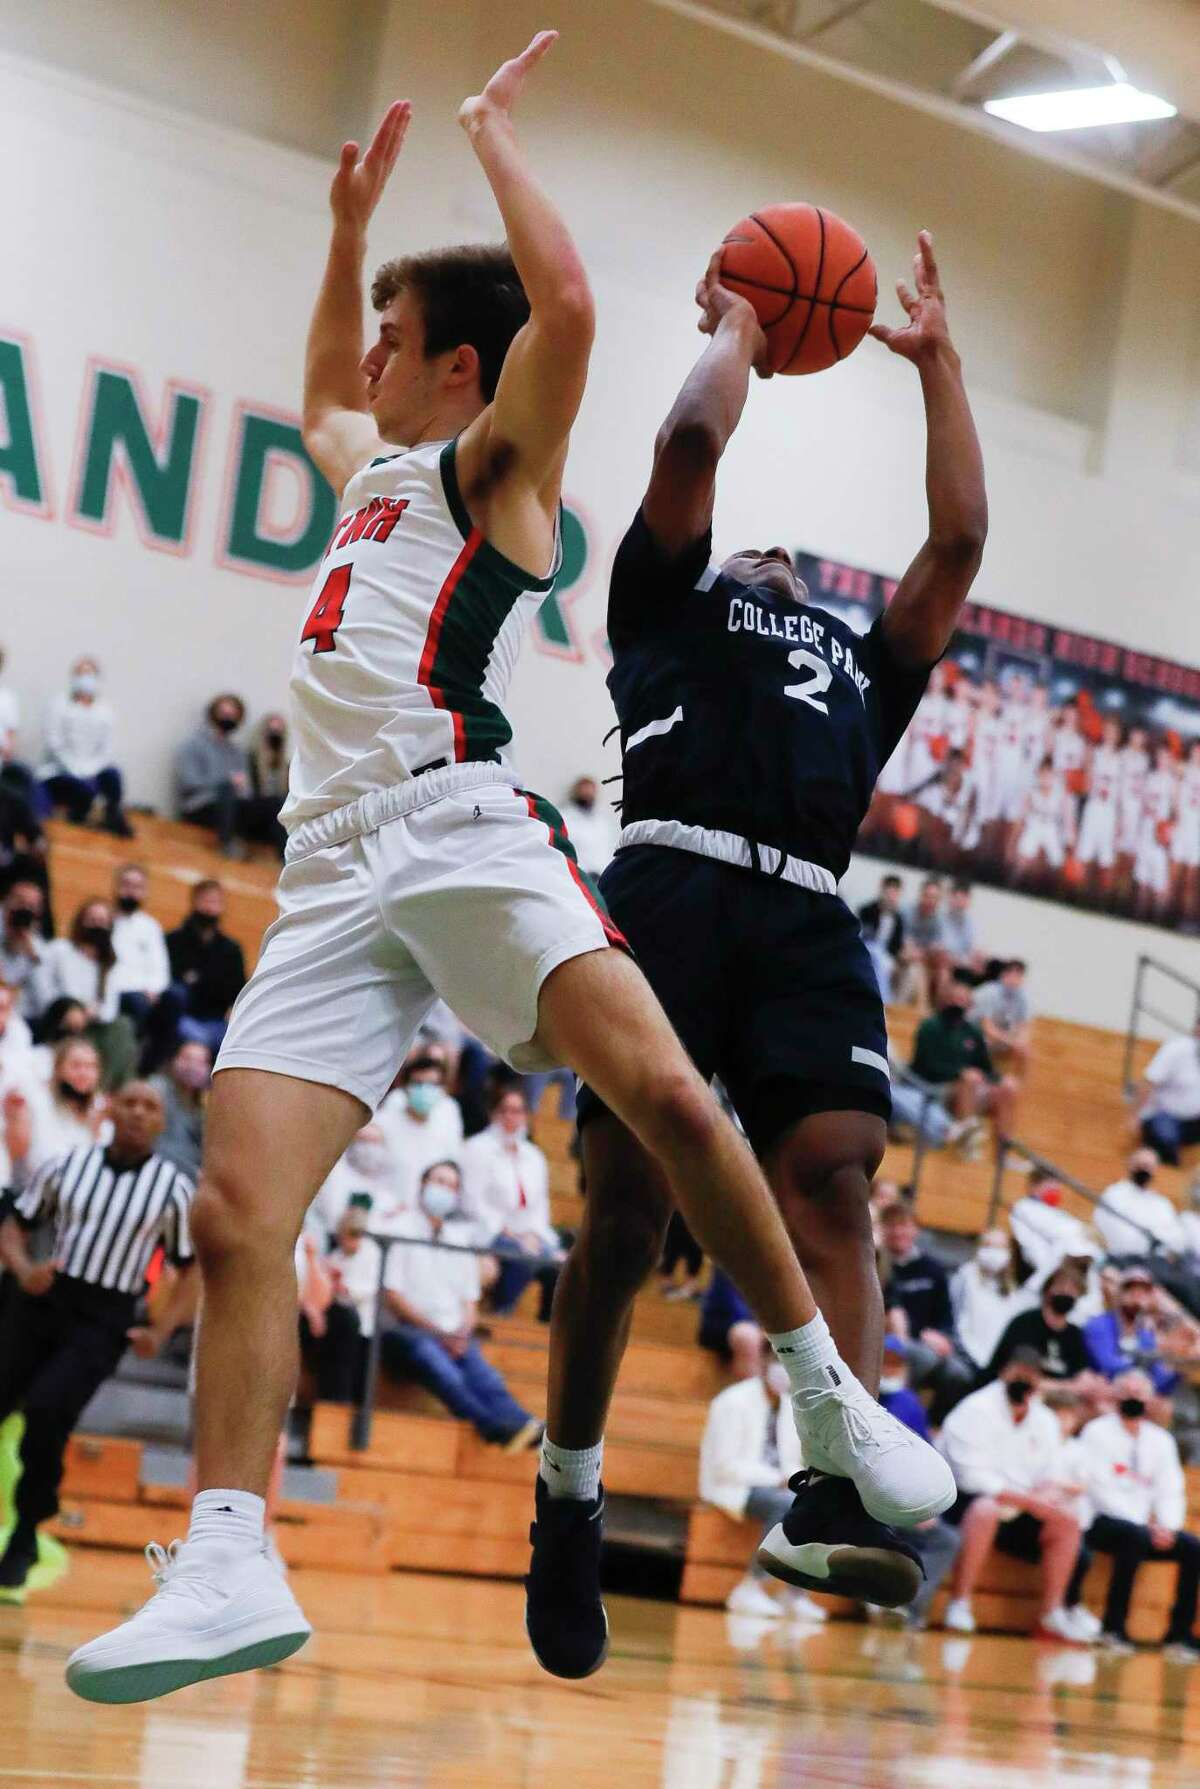 College Park guard Marvin Dock (2) shoots past The Woodlands guard Cade Moore (4) during the first quarter of a District 13-6A high school basketball game at The Woodlands High School, Wednesday, Jan. 6, 2021, in The Woodlands.